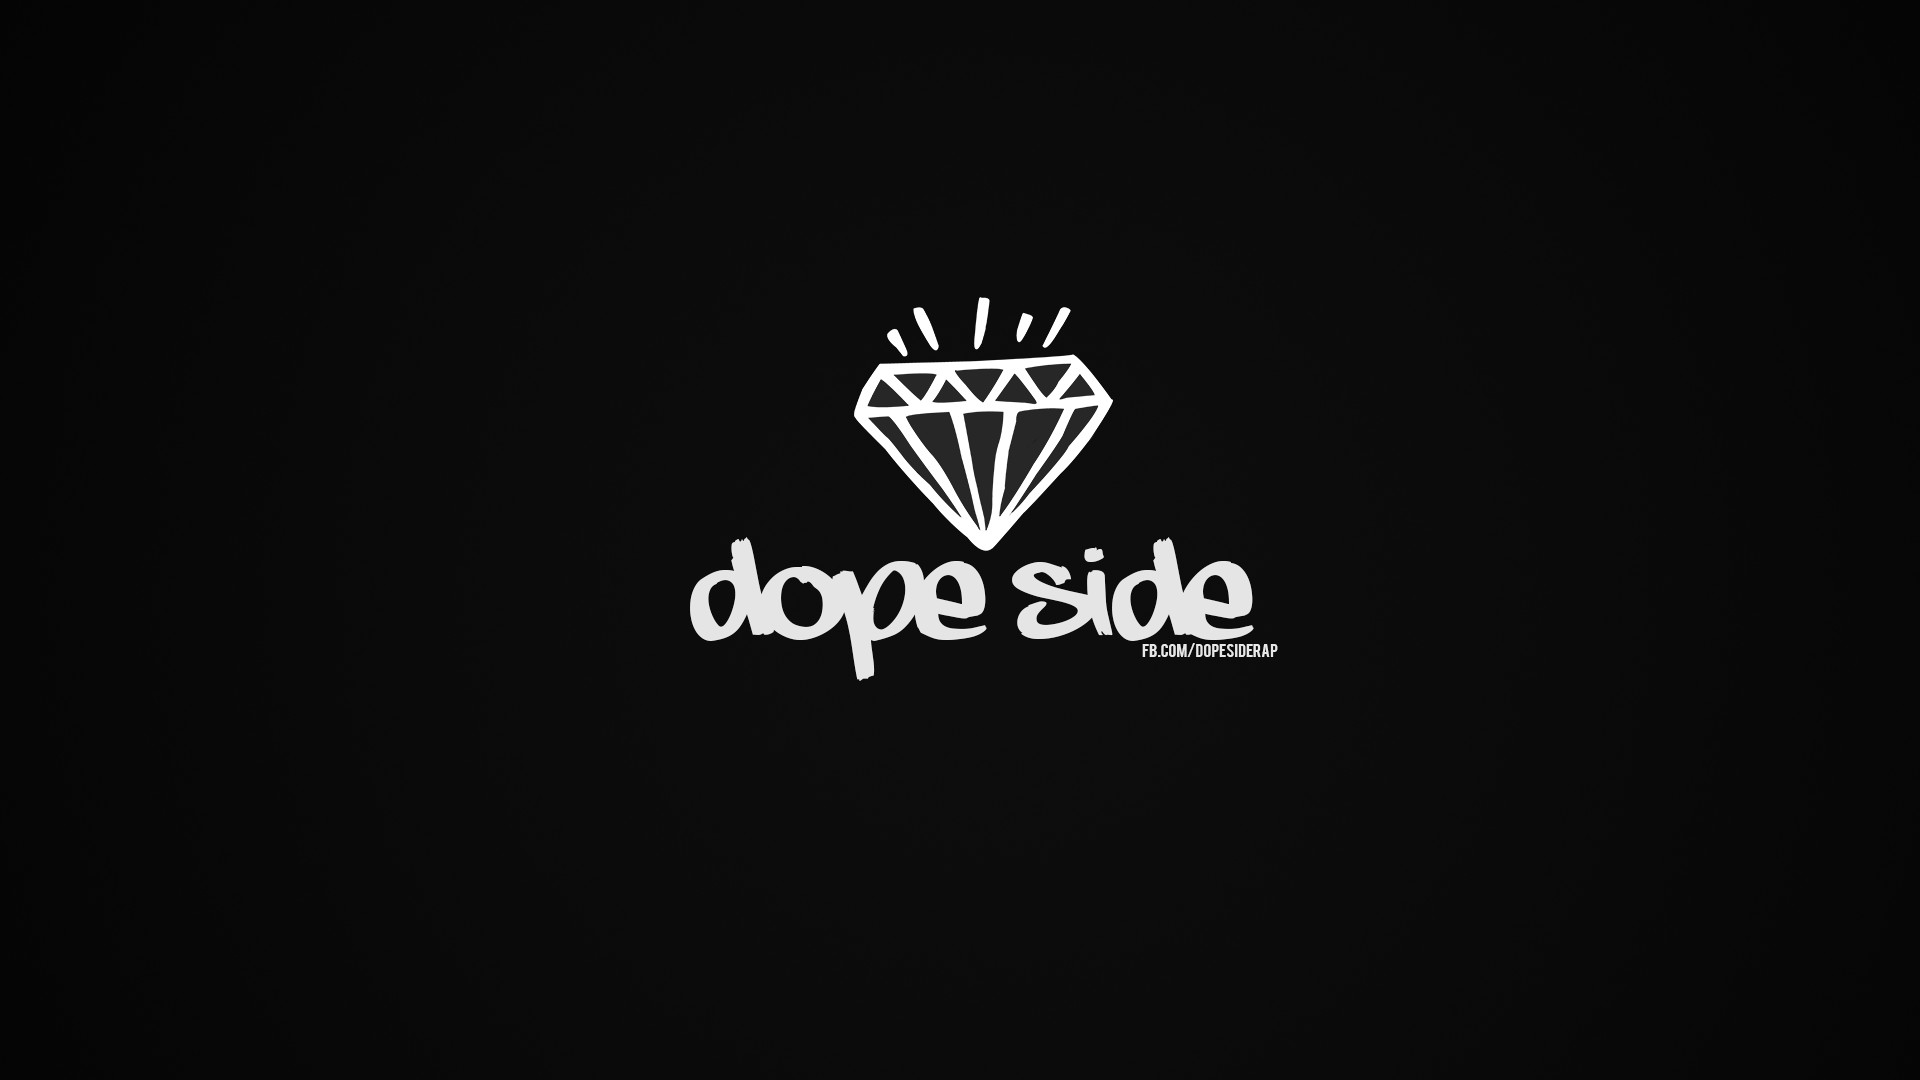 1920x1080 ... DOPE SIDE - RAP Wallpaper #3 by TuhCaldas